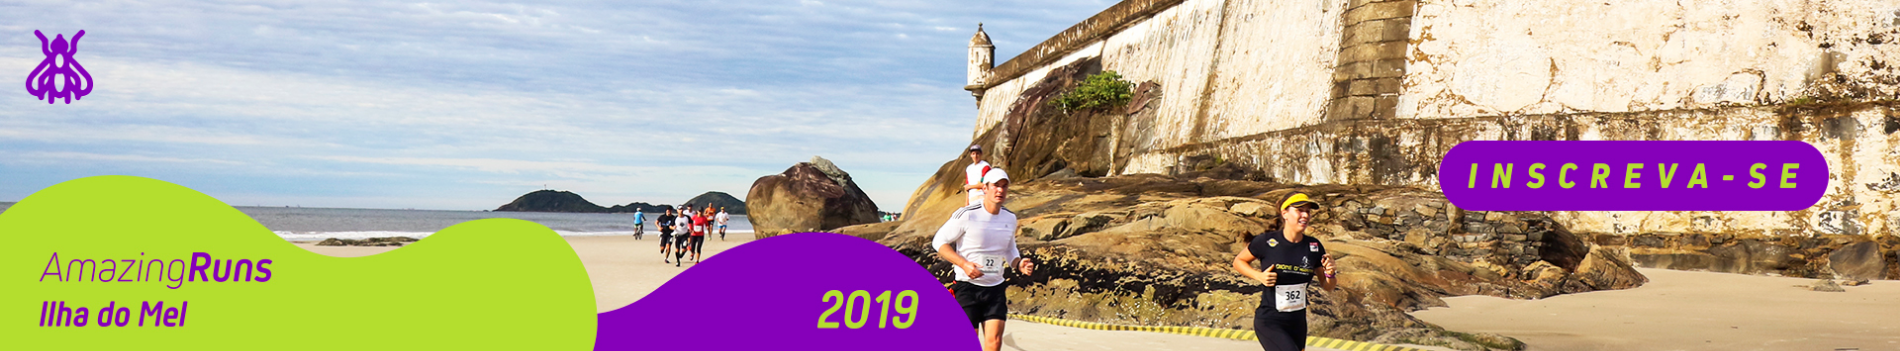 AMAZING RUNS ILHA DO MEL - 2019